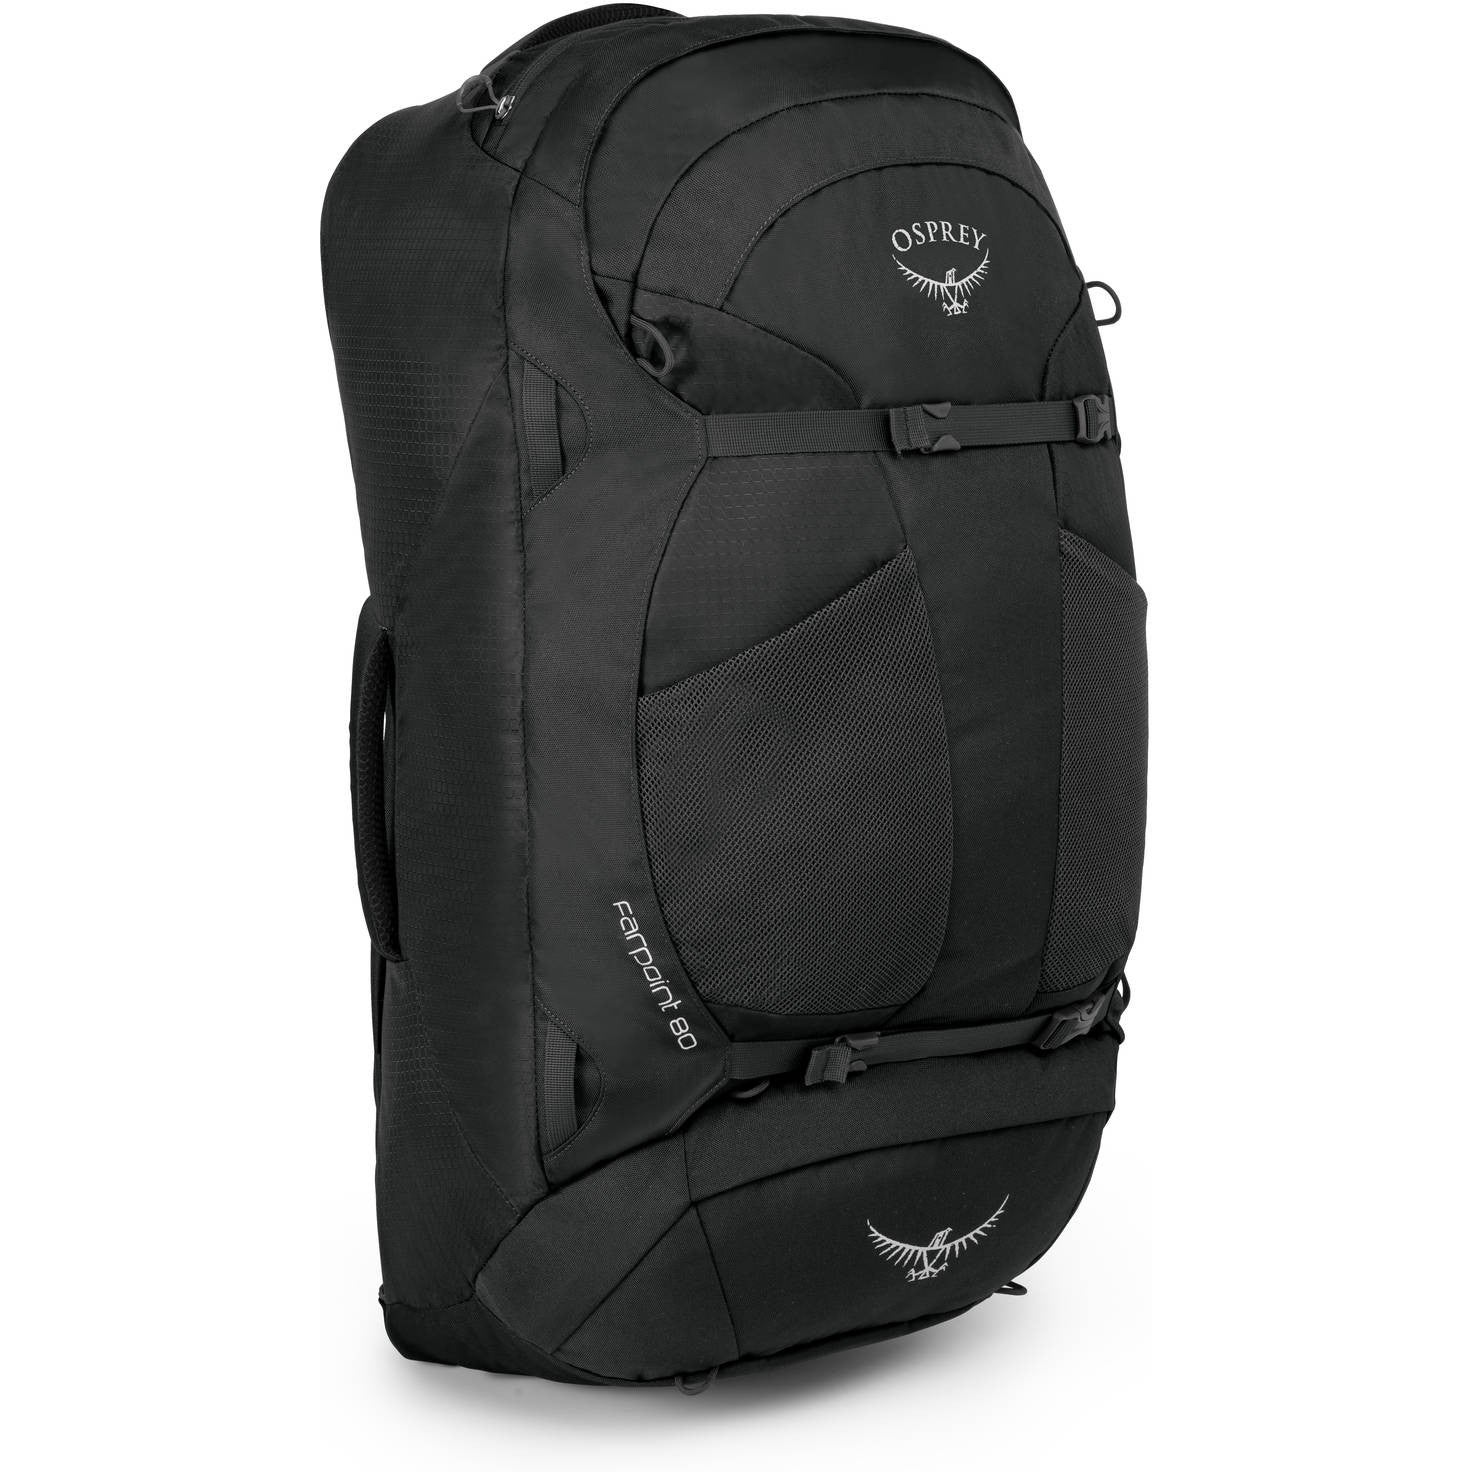 Osprey Farpoint 80 Backpack - Volcanic Grey